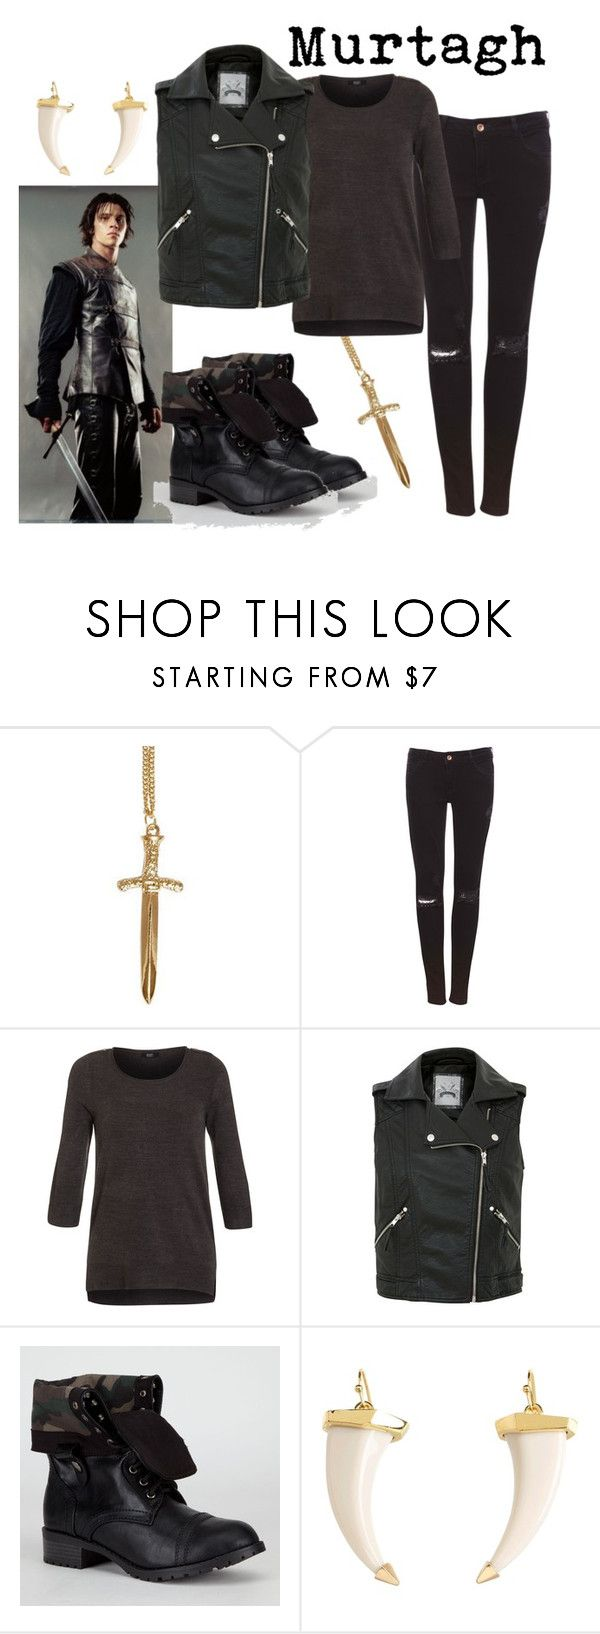 """""""Murtagh"""" by fandom-wardrobes ❤ liked on Polyvore featuring Pull&Bear, Soda, Vince Camuto, eragon and murtagh"""